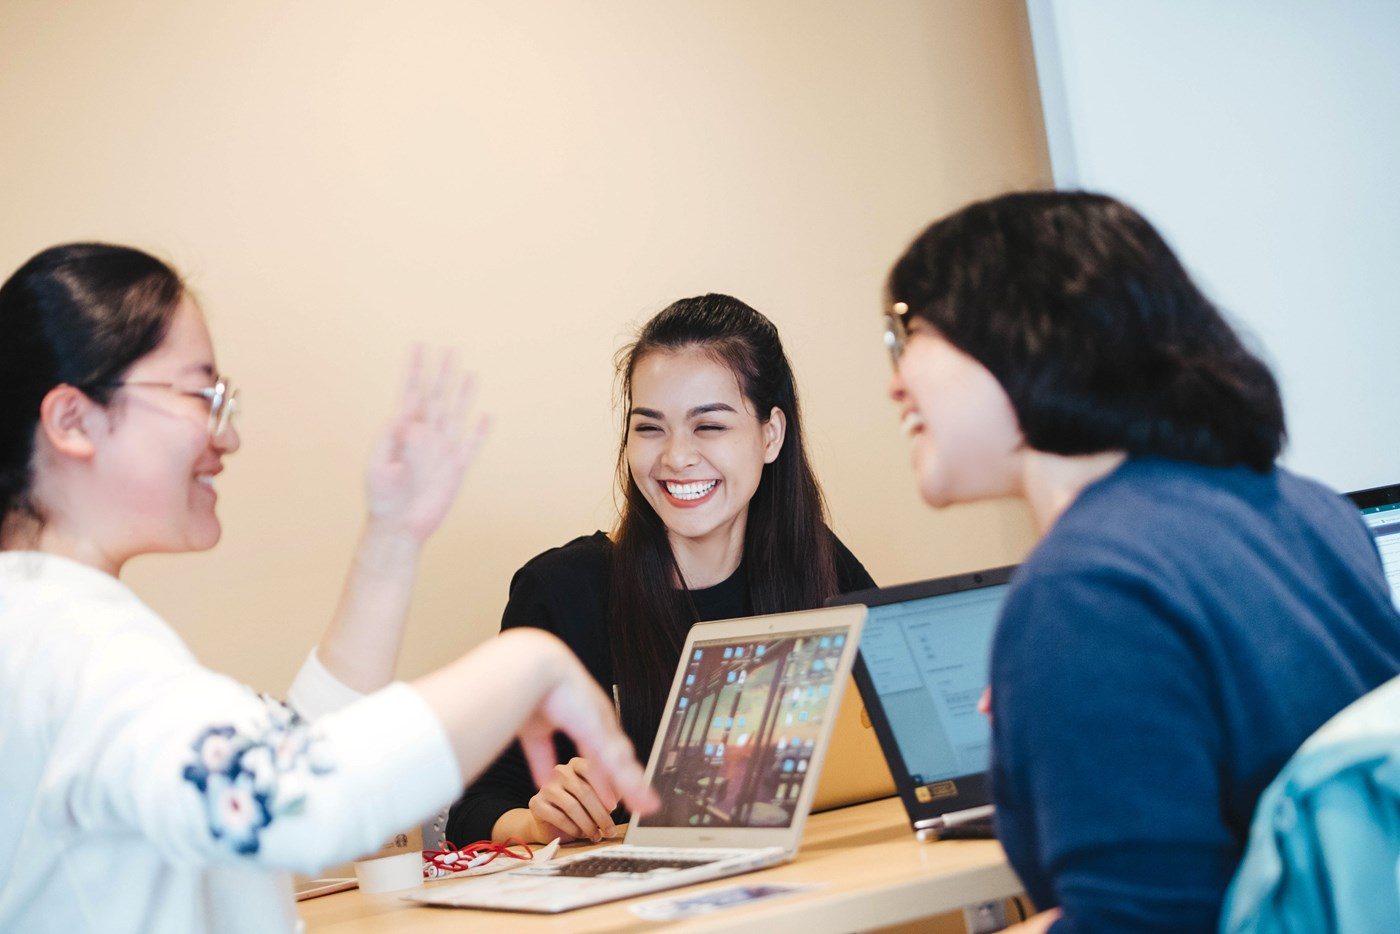 Three young Asian women laugh and smile while working at a table on laptops